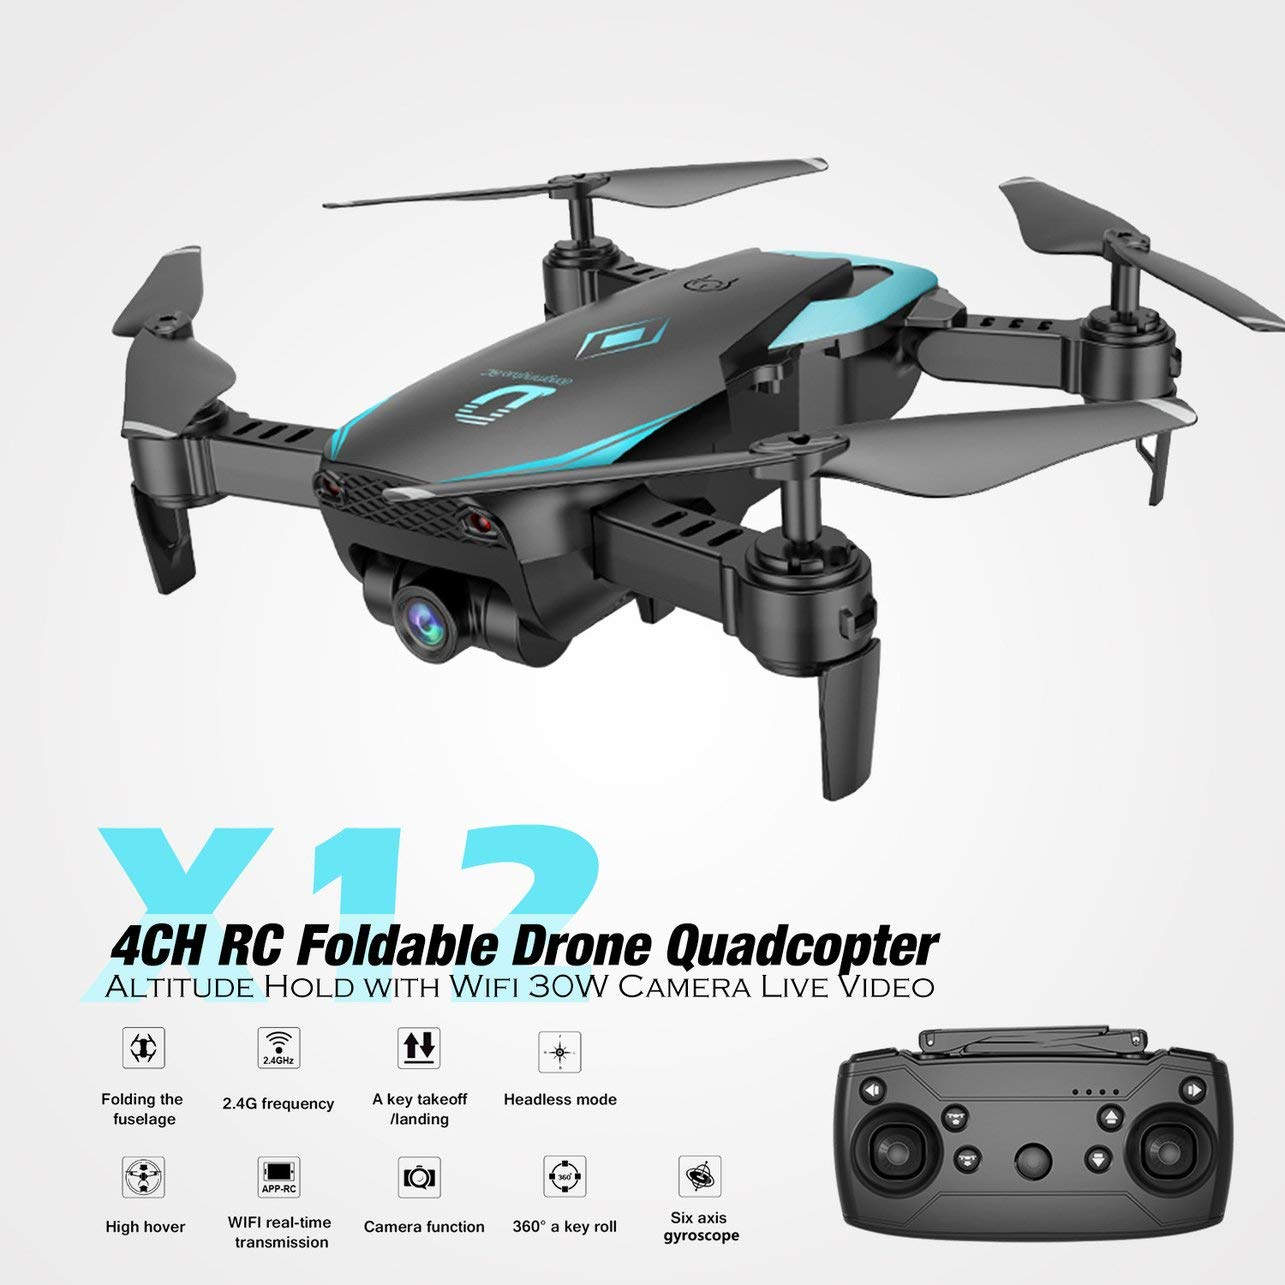 WOSOSYEYO X12 4CH RC Plegable Drone Quadcopter Altitude Hold con ...